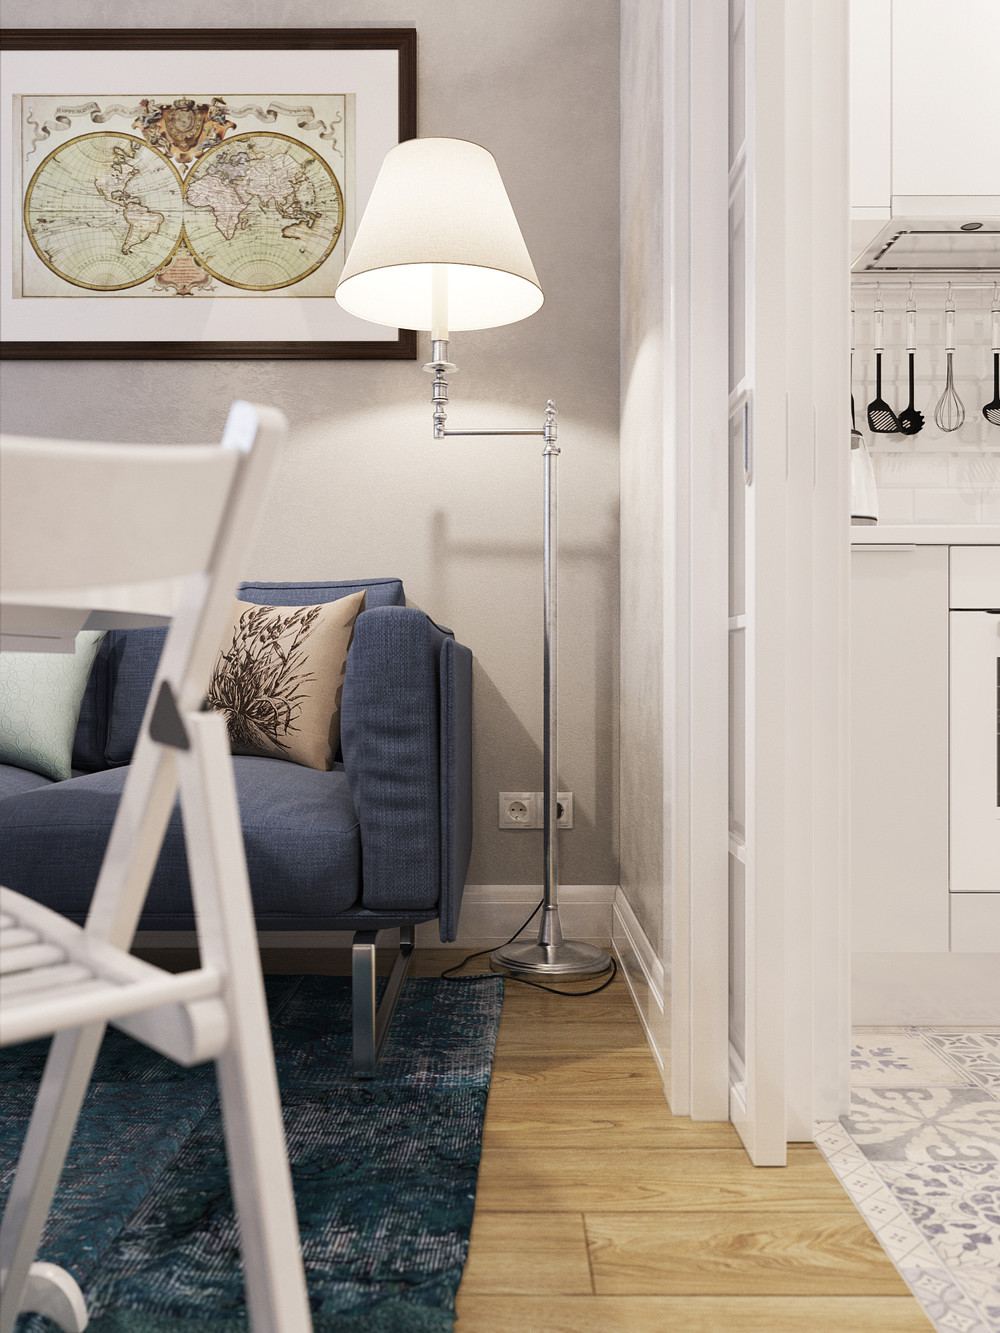 Designing For Super Small Spaces: 5 Micro Apartments on